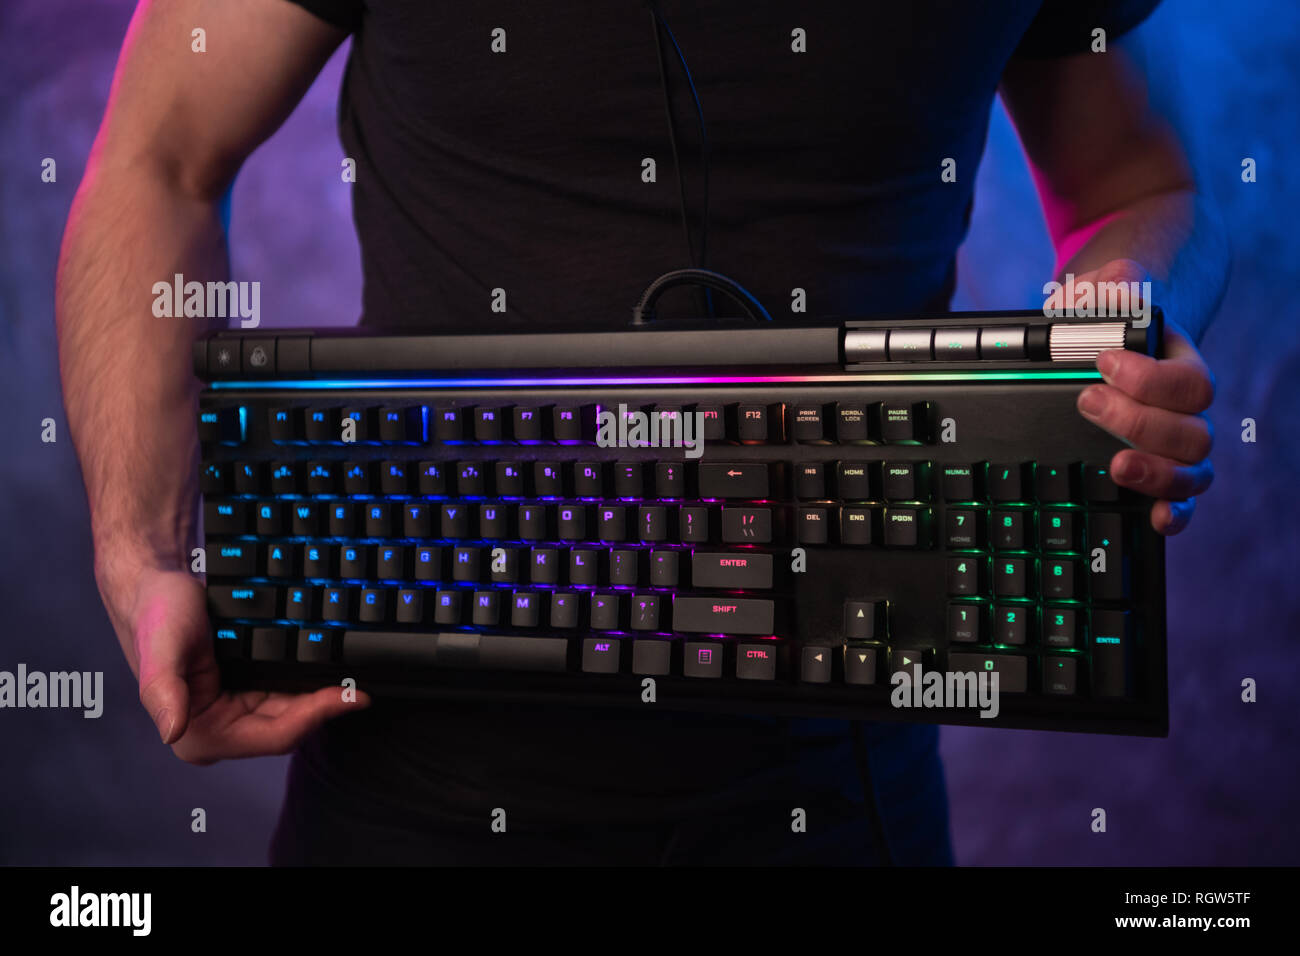 Close-up on gamer's hands holding a keyboard. Background is lit with neon lights - Stock Image